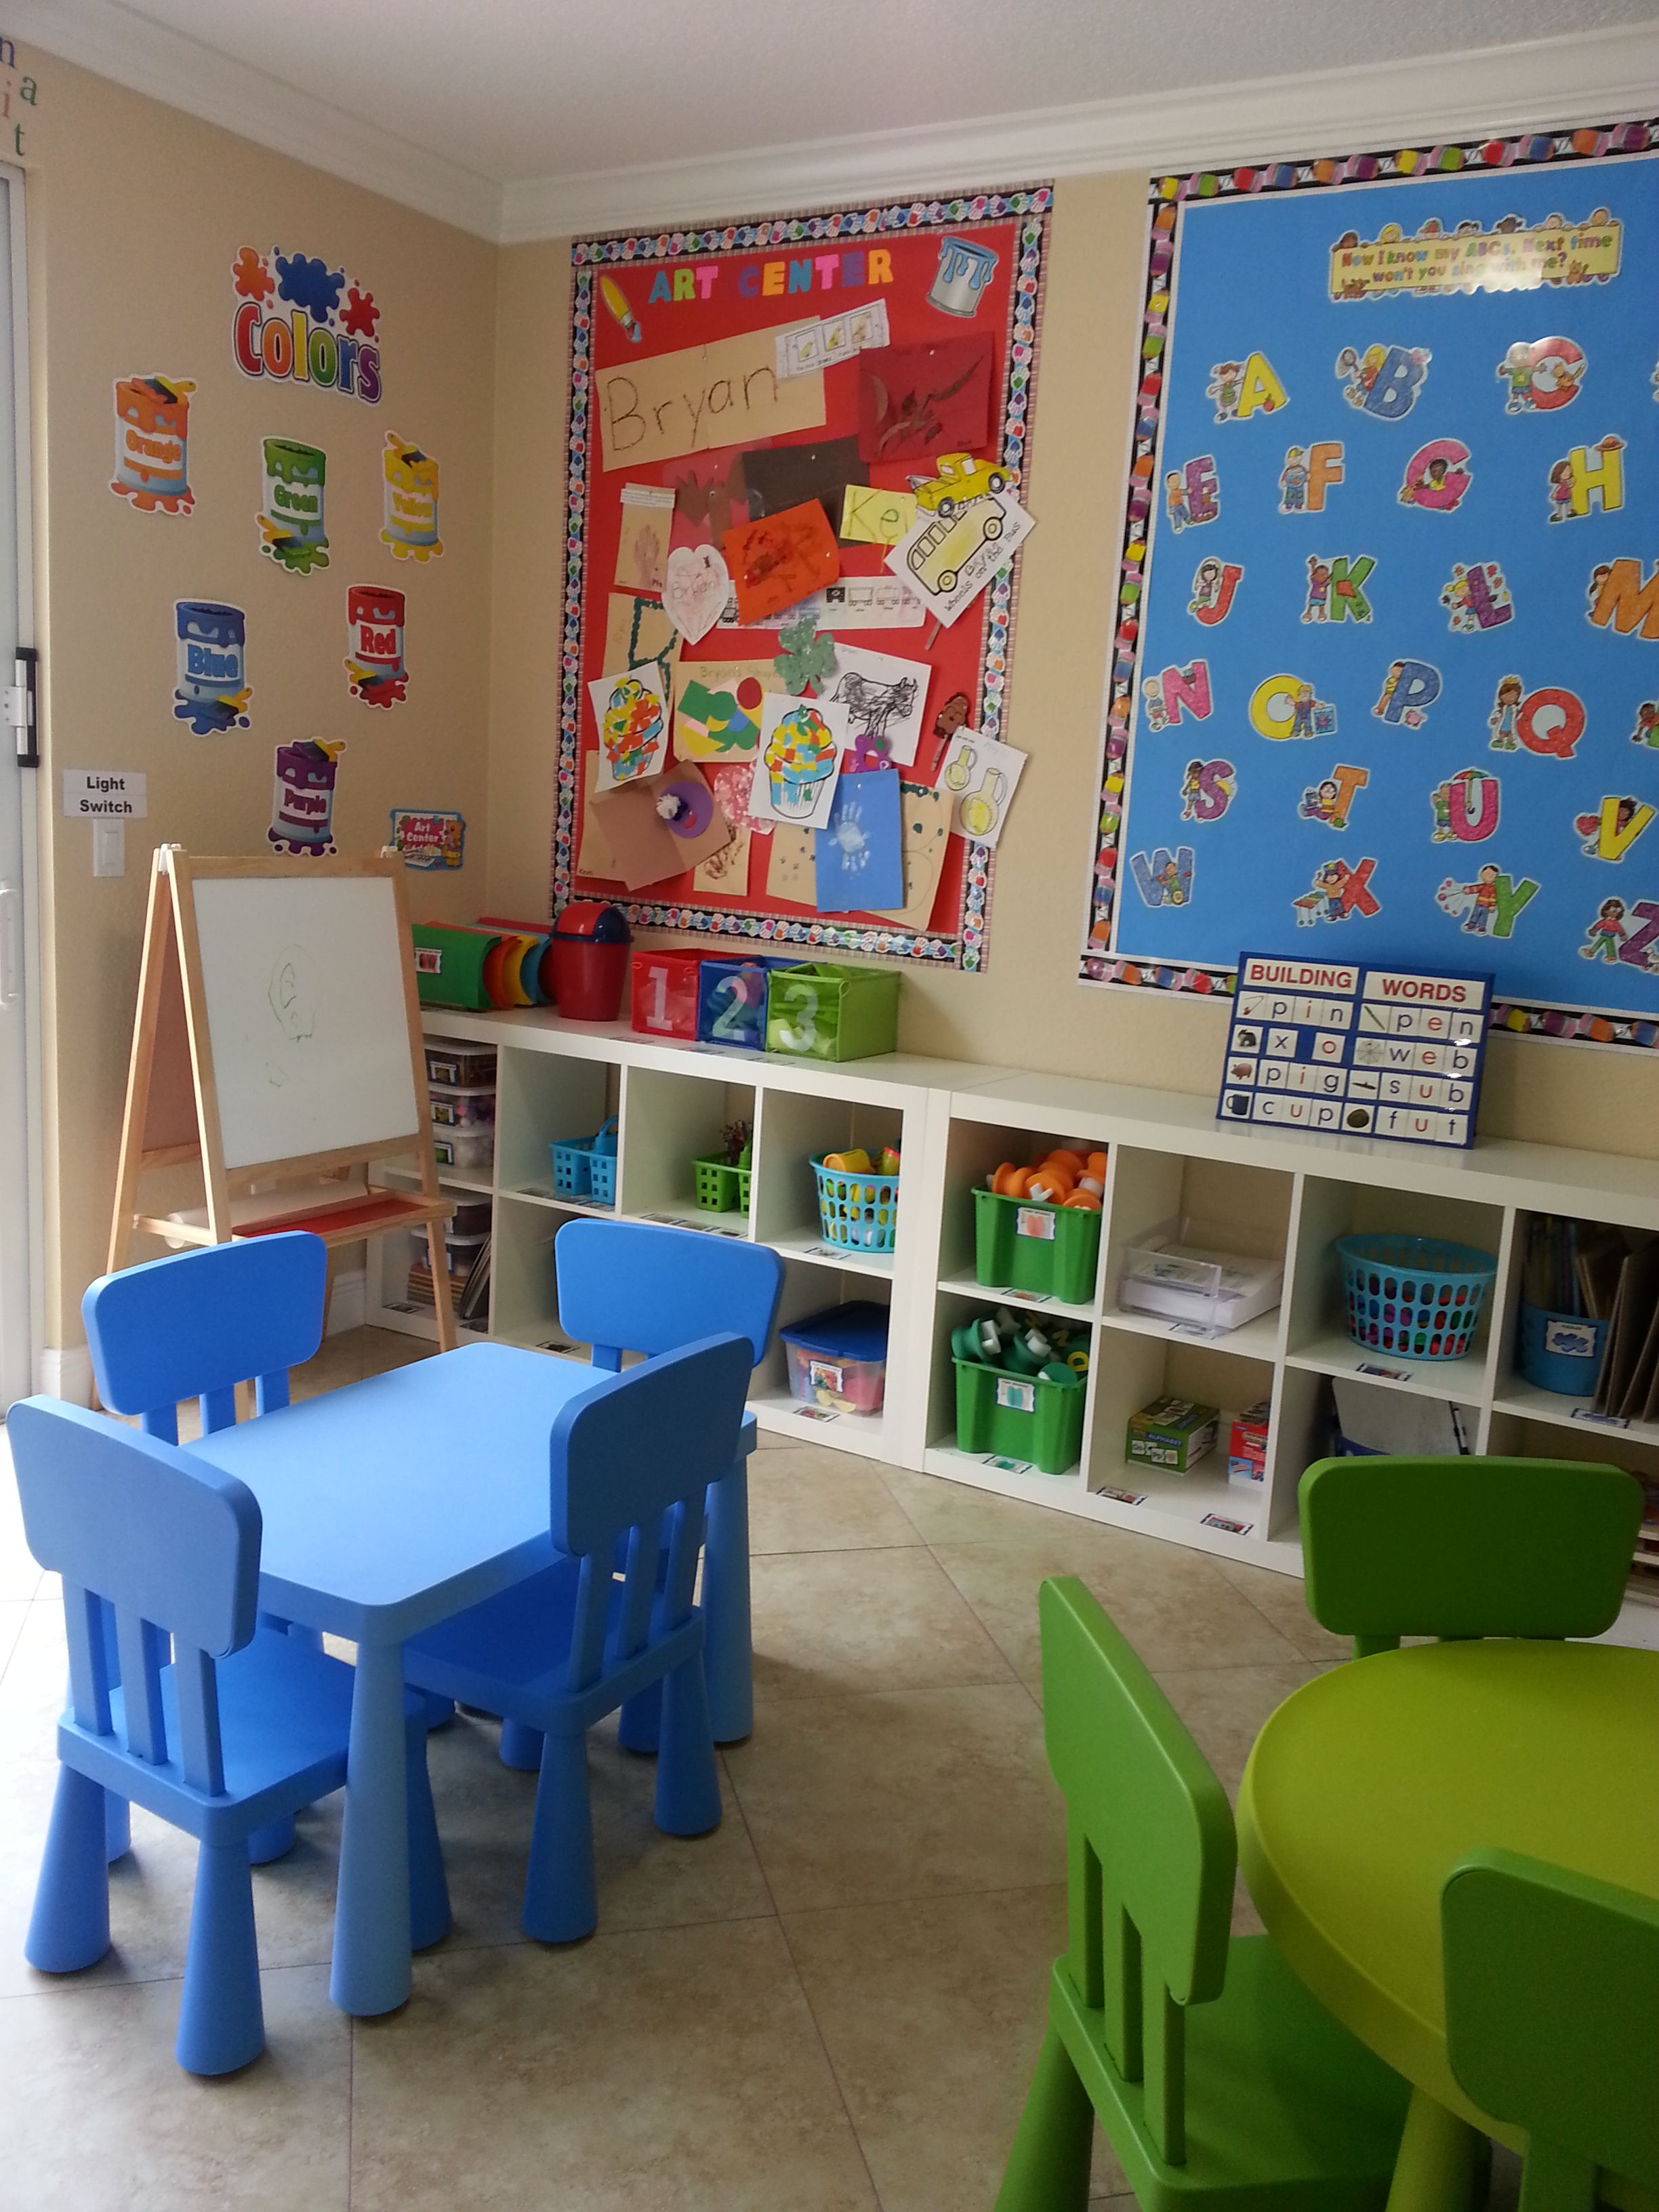 Two Small Tables Home Daycare Ideas The Kids Place Preschool Palm Springs Fl Daycare Decor Daycare Design Home Daycare